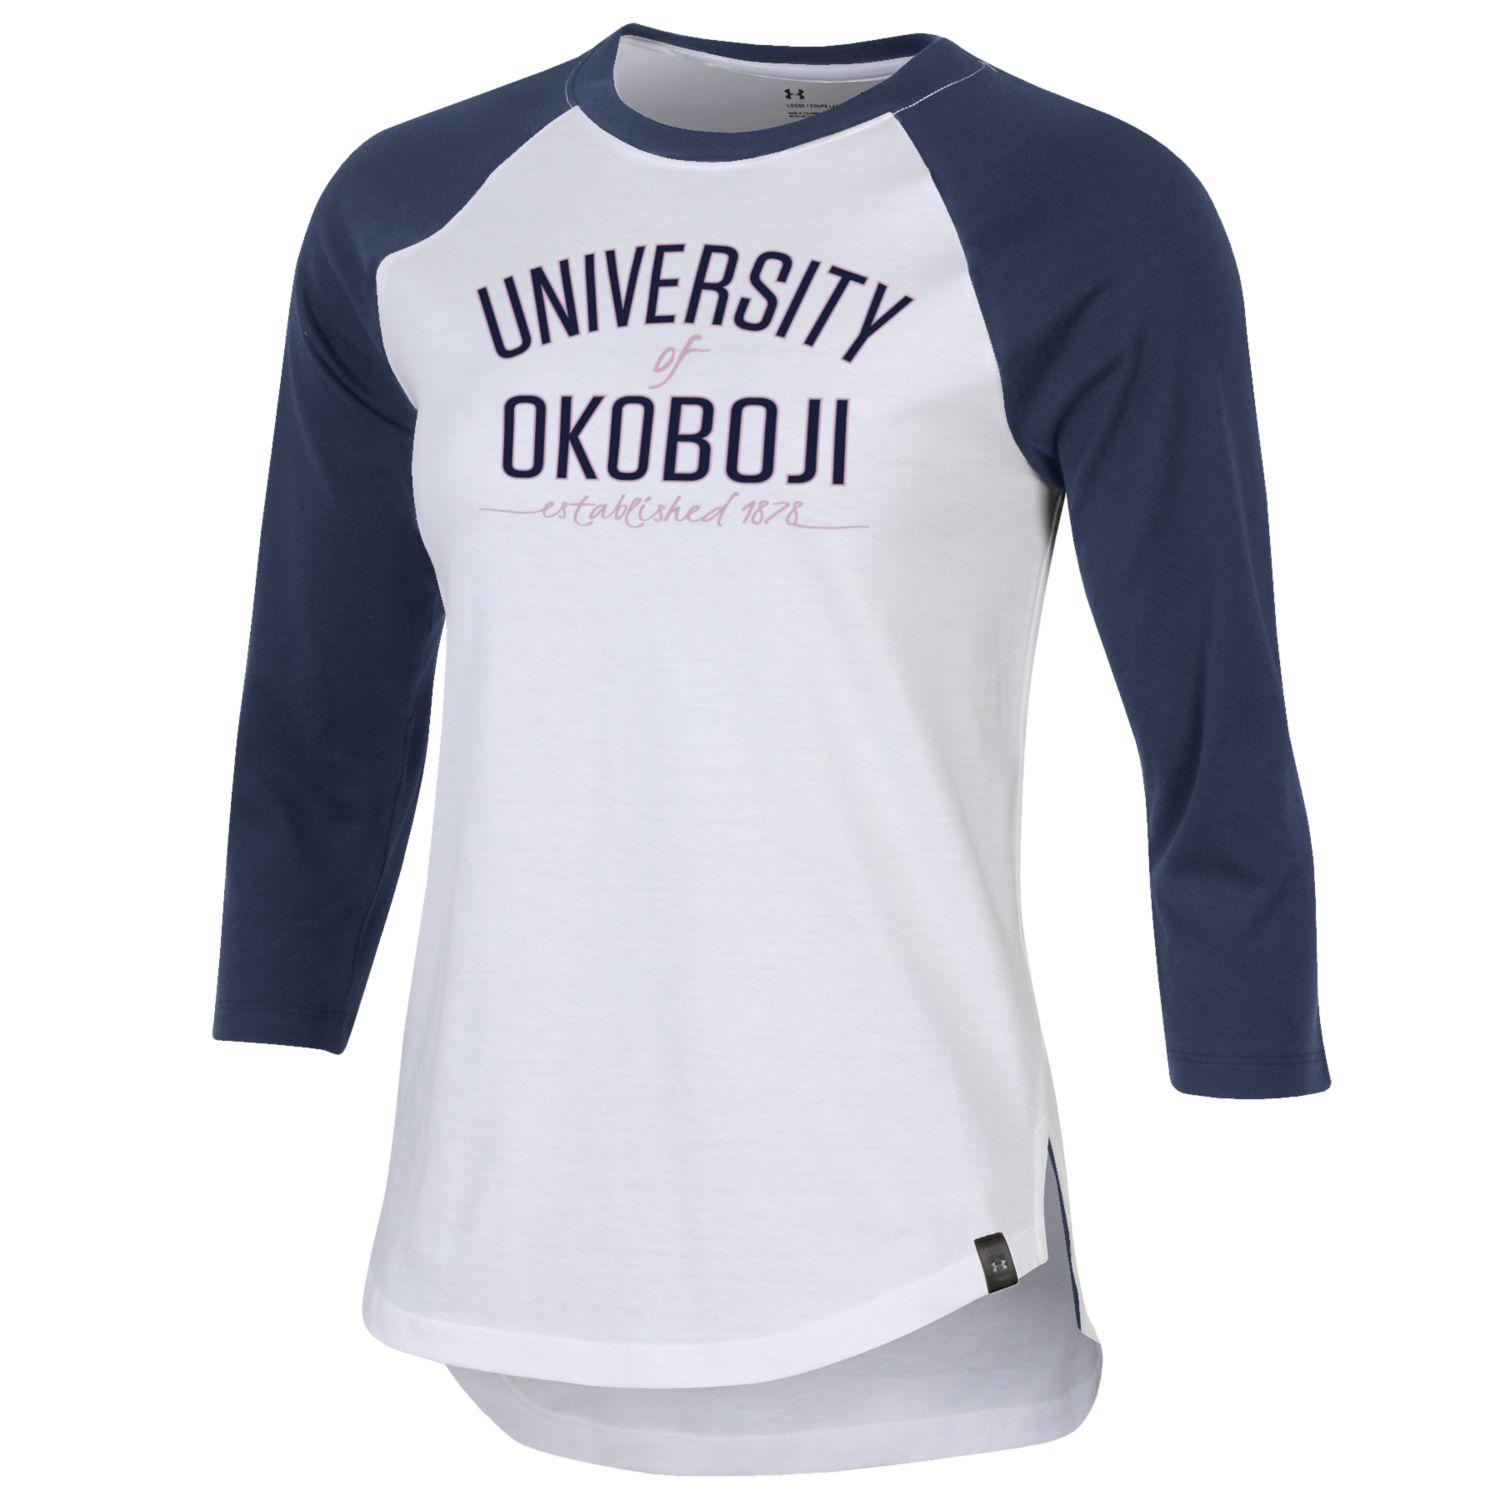 Ladies Okoboji Performance Cotton Baseball Tee